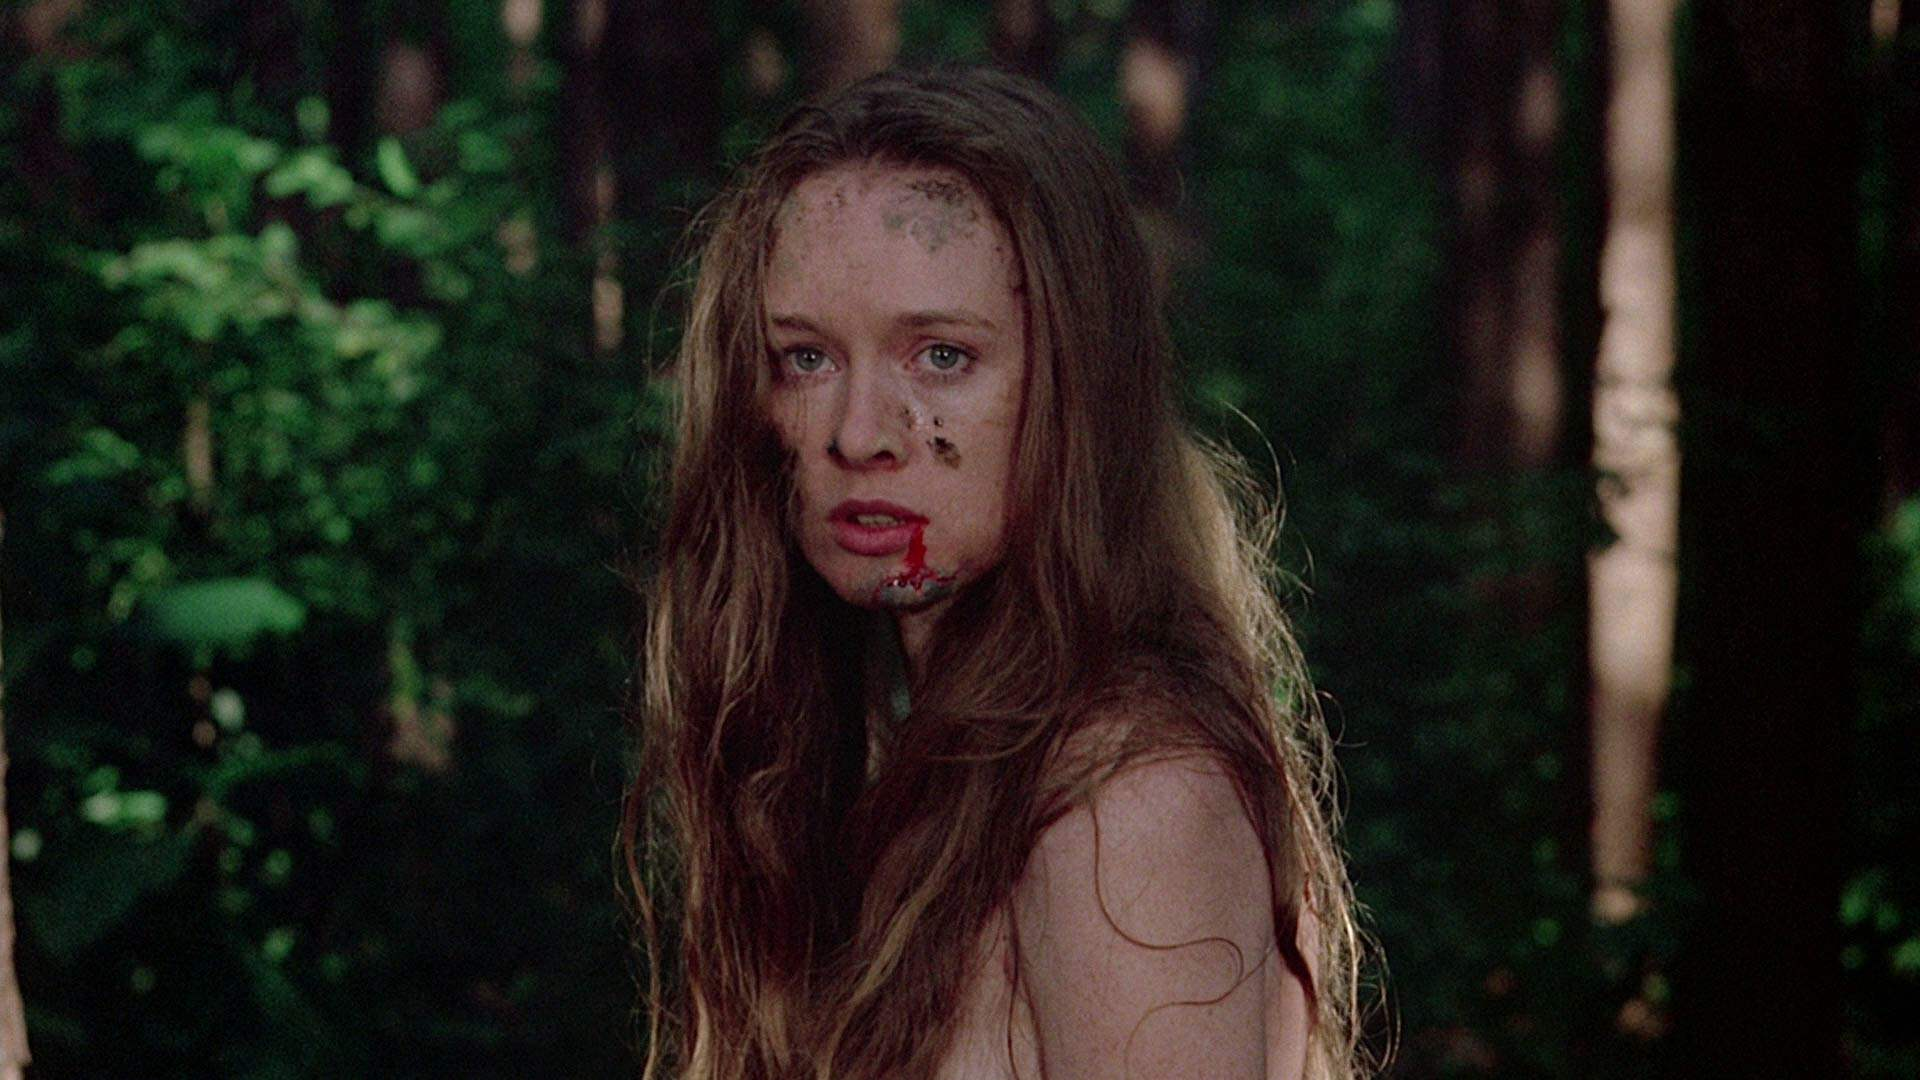 A dirty and bloody Jennifer wanders the woods after being assaulted in I Spit on Your Grave.